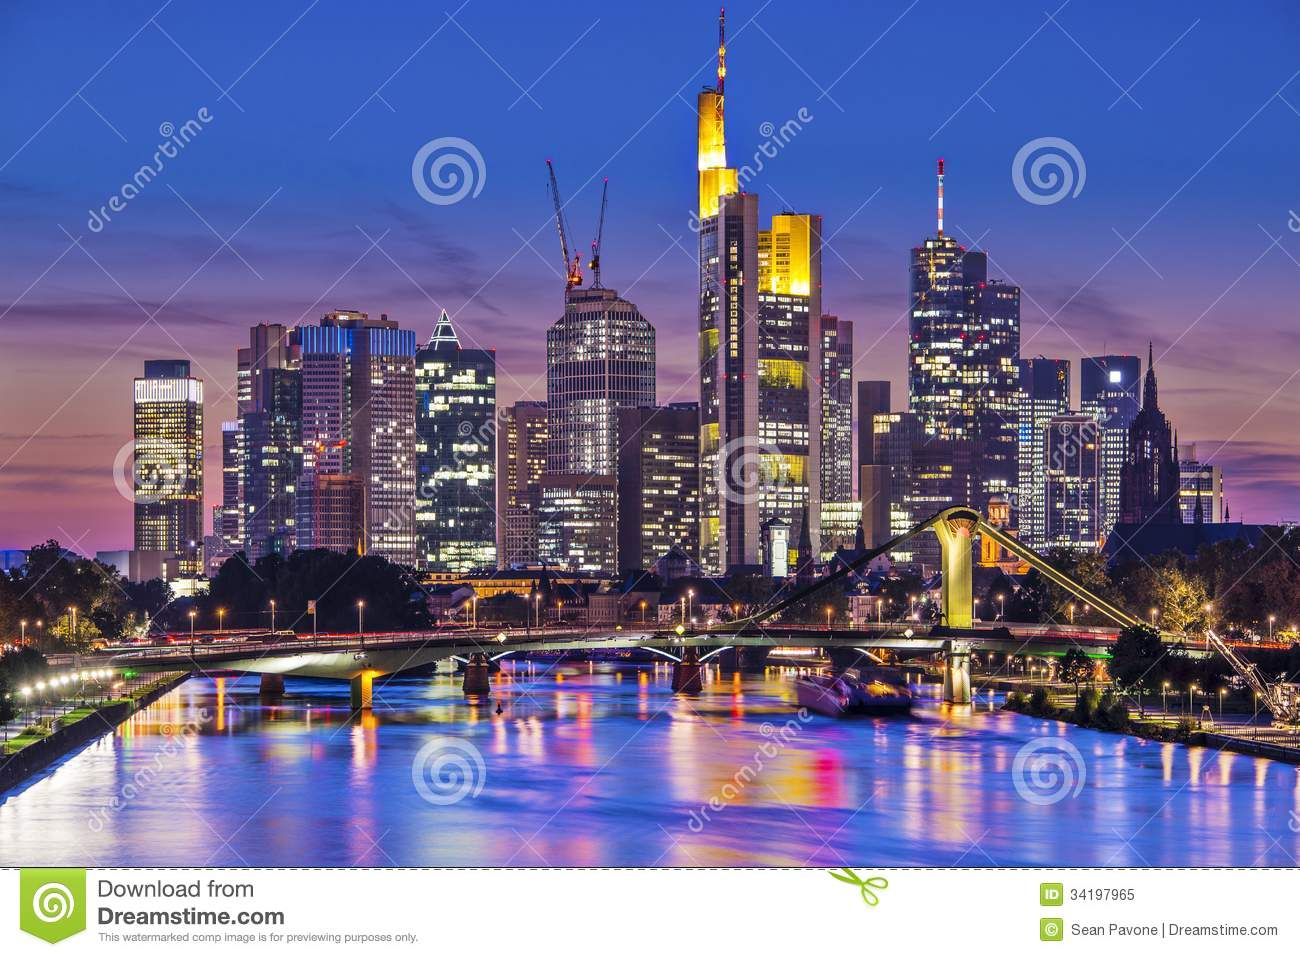 Skyline of frankfurt, germany, the financial center of the country